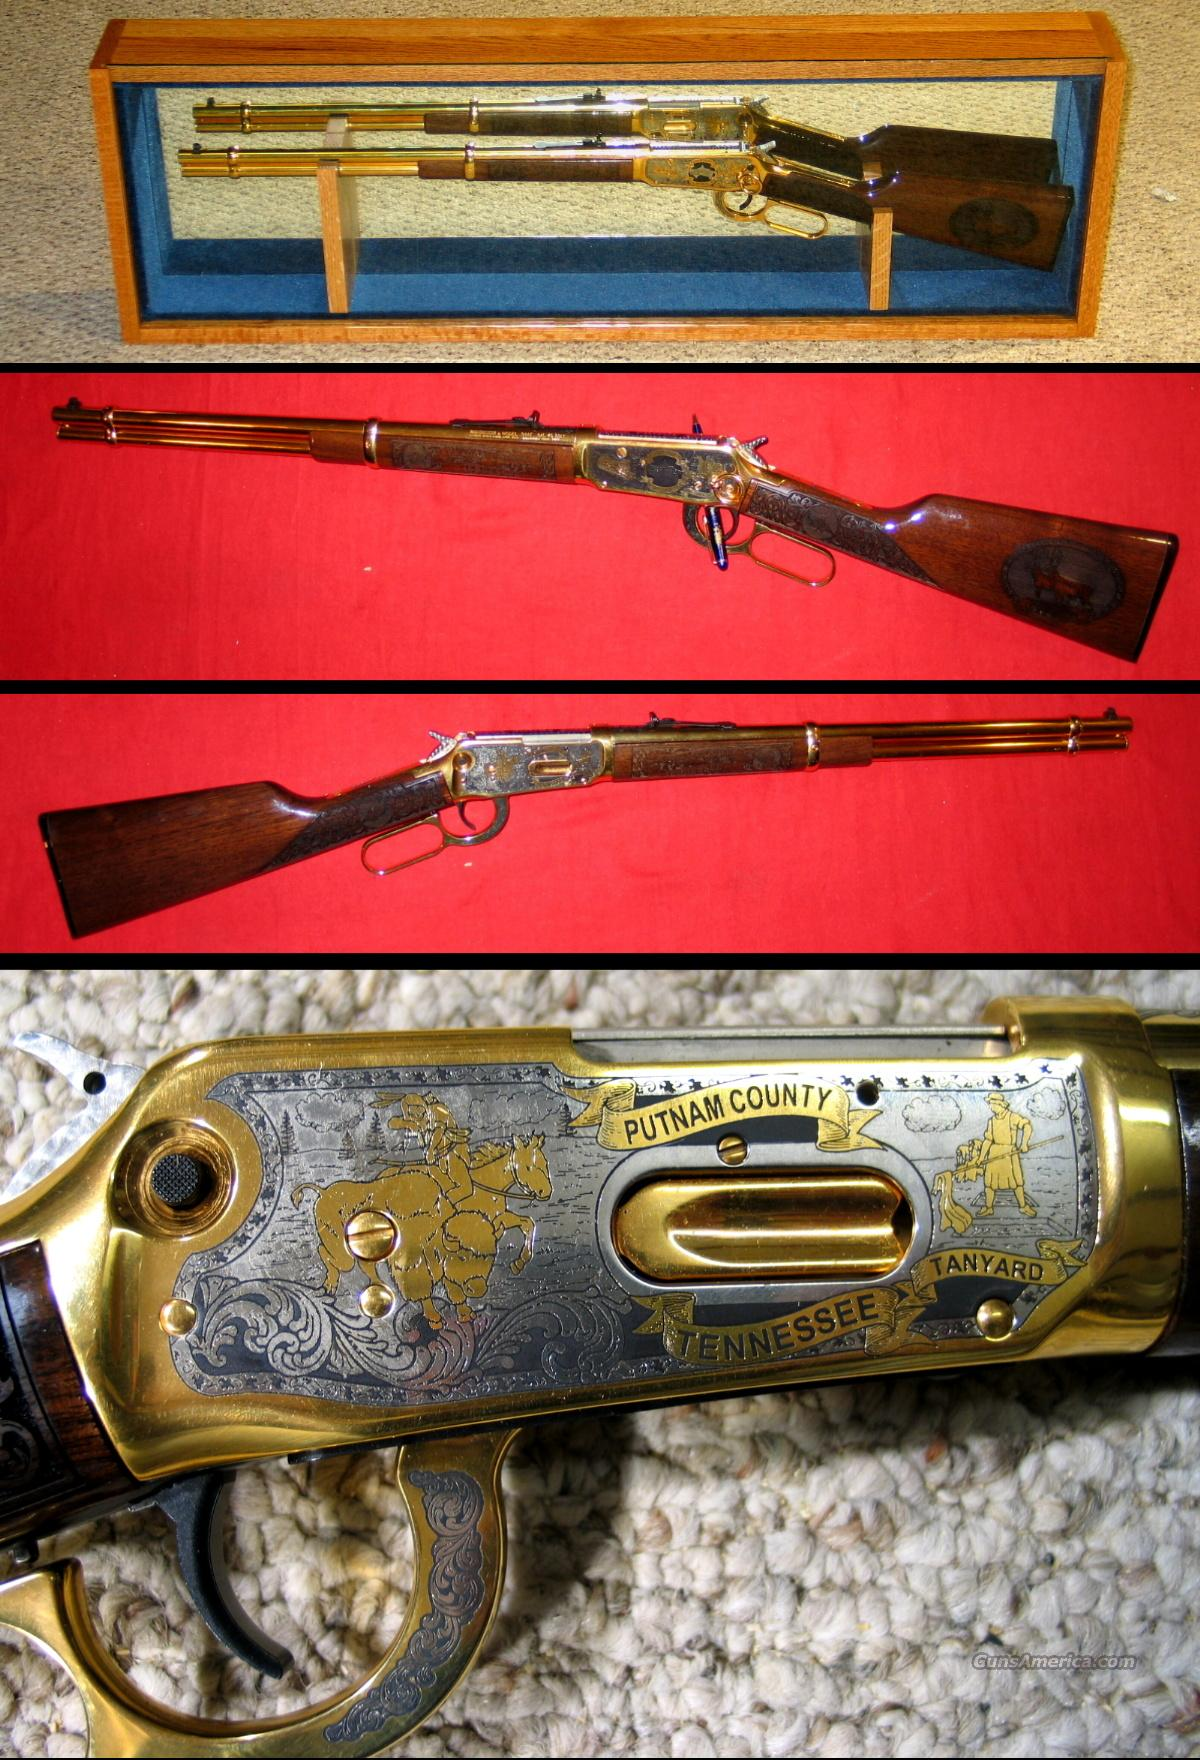 94AE SRC Putnam County, TN 45lc w/case  Guns > Rifles > Winchester Rifle Commemoratives